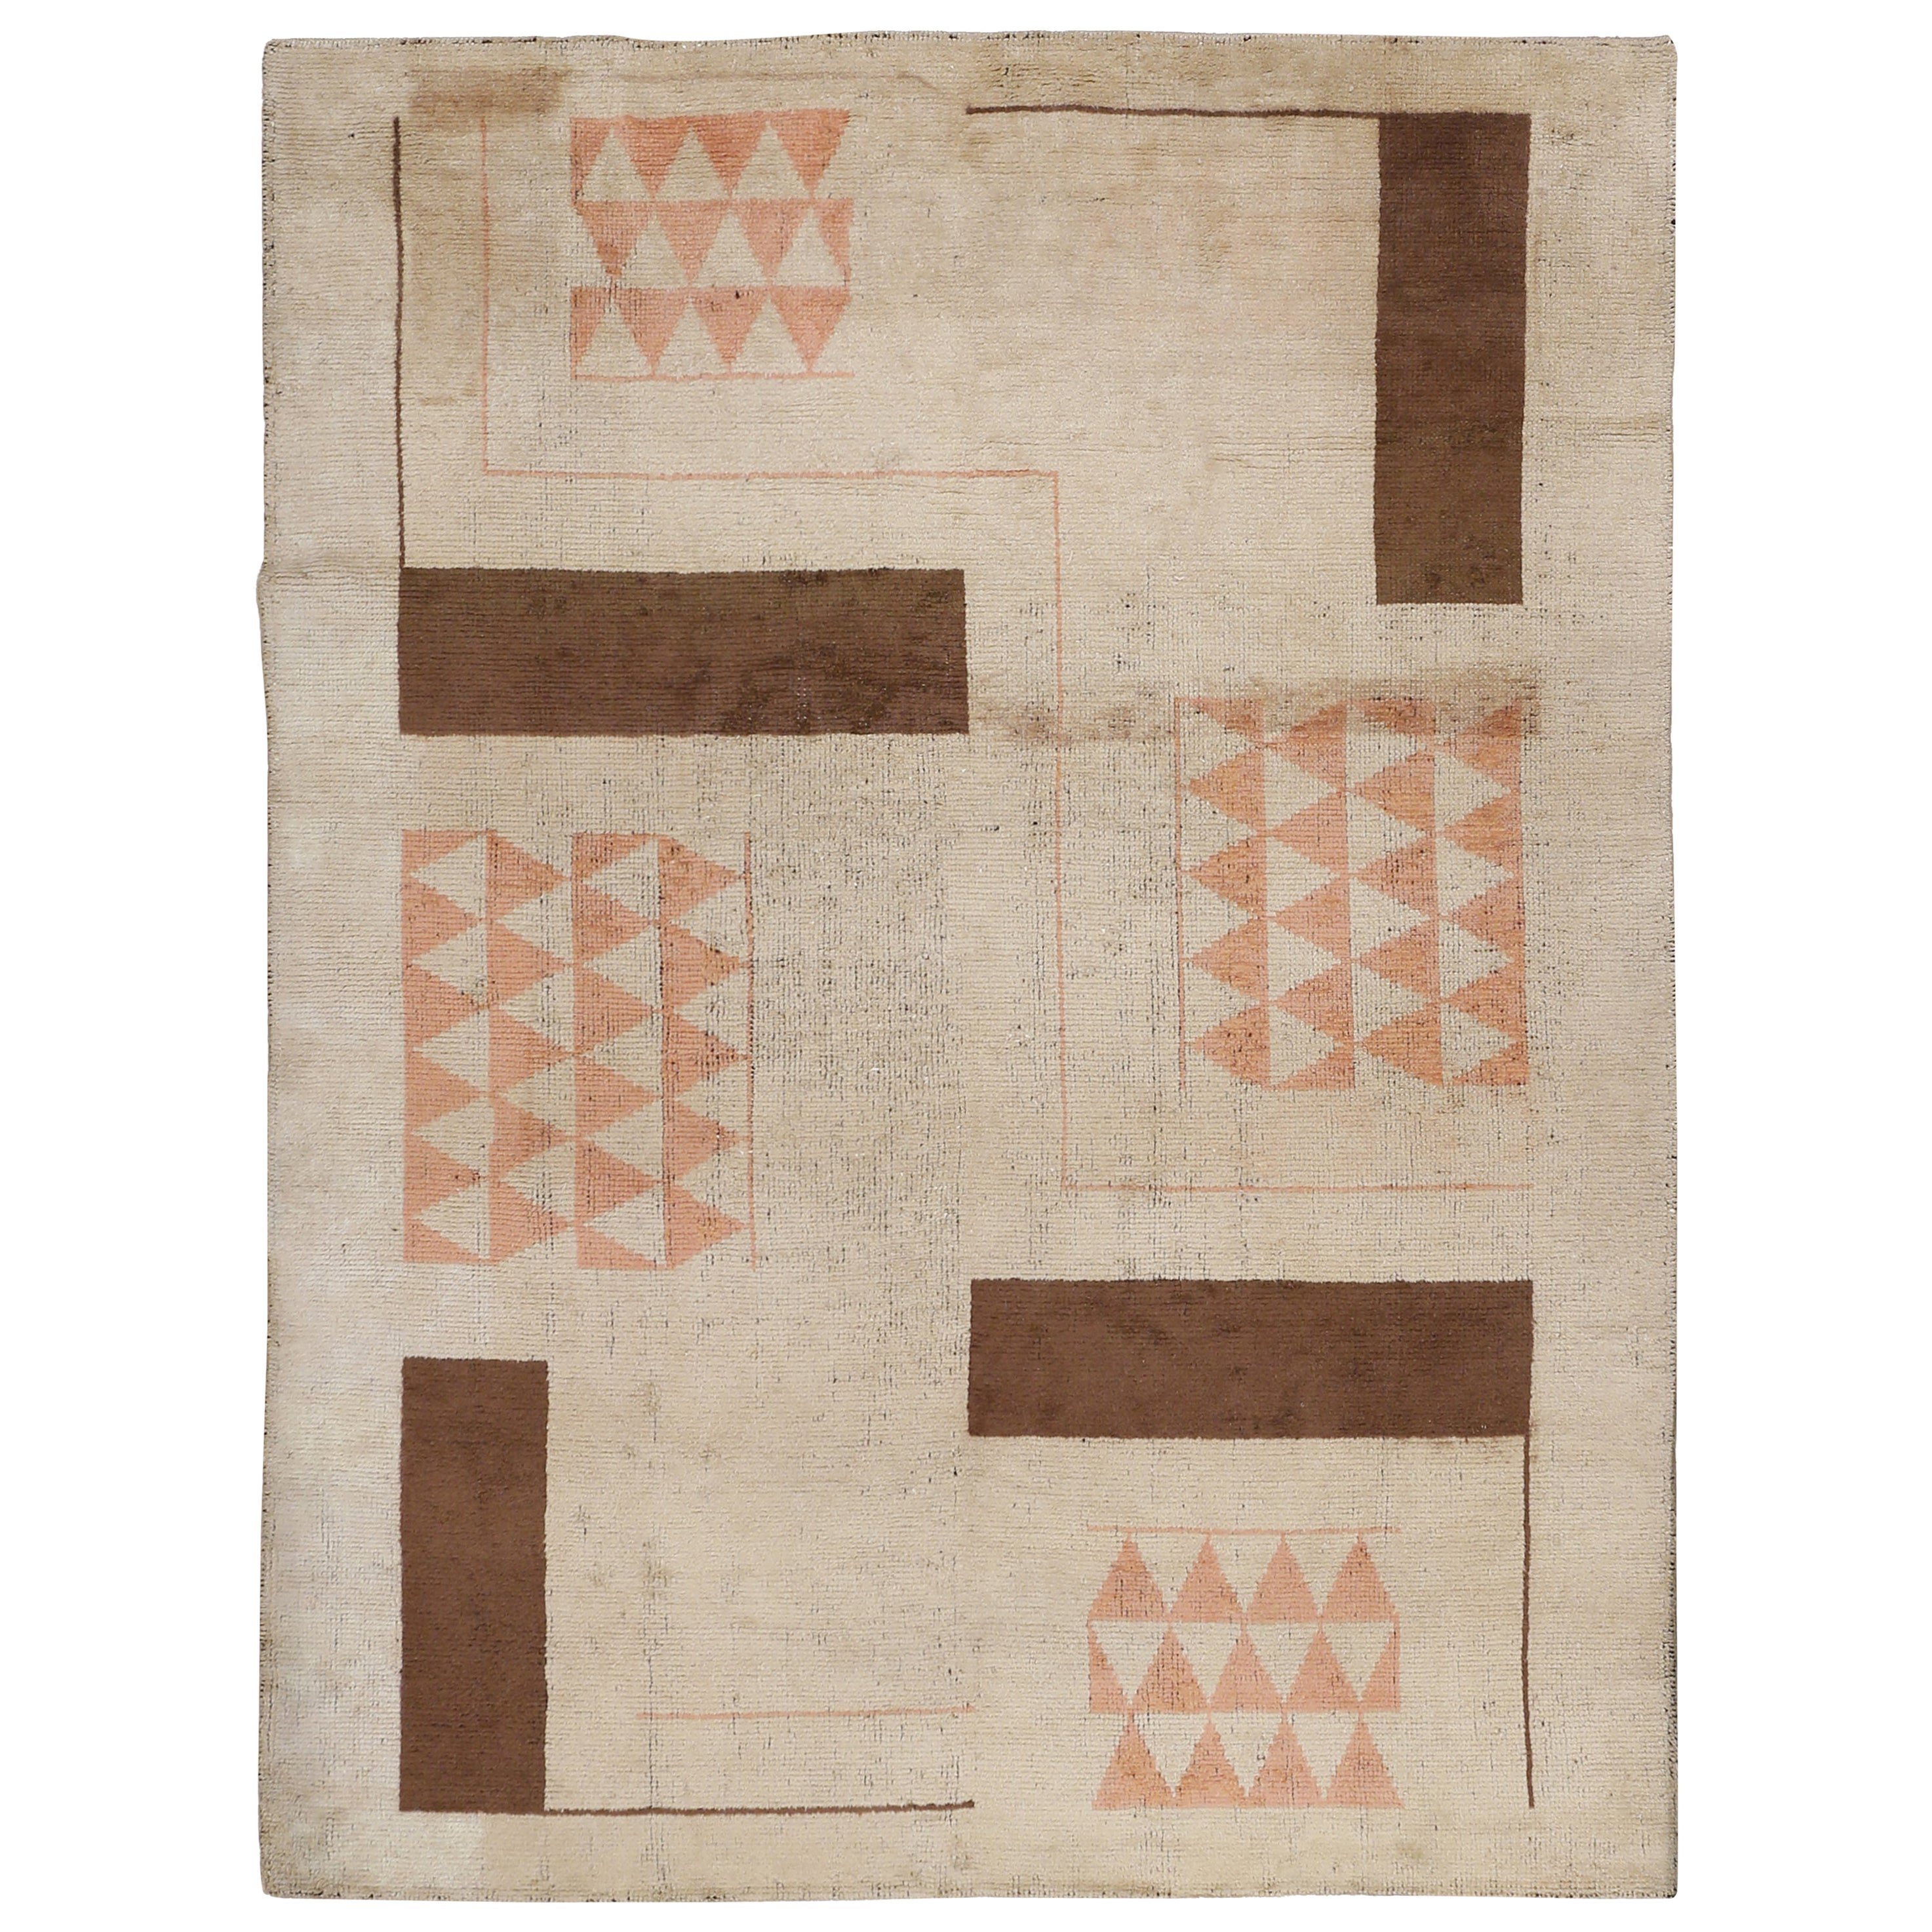 French Art Deco Rug Attributed to Ivan da Silva Bruhns